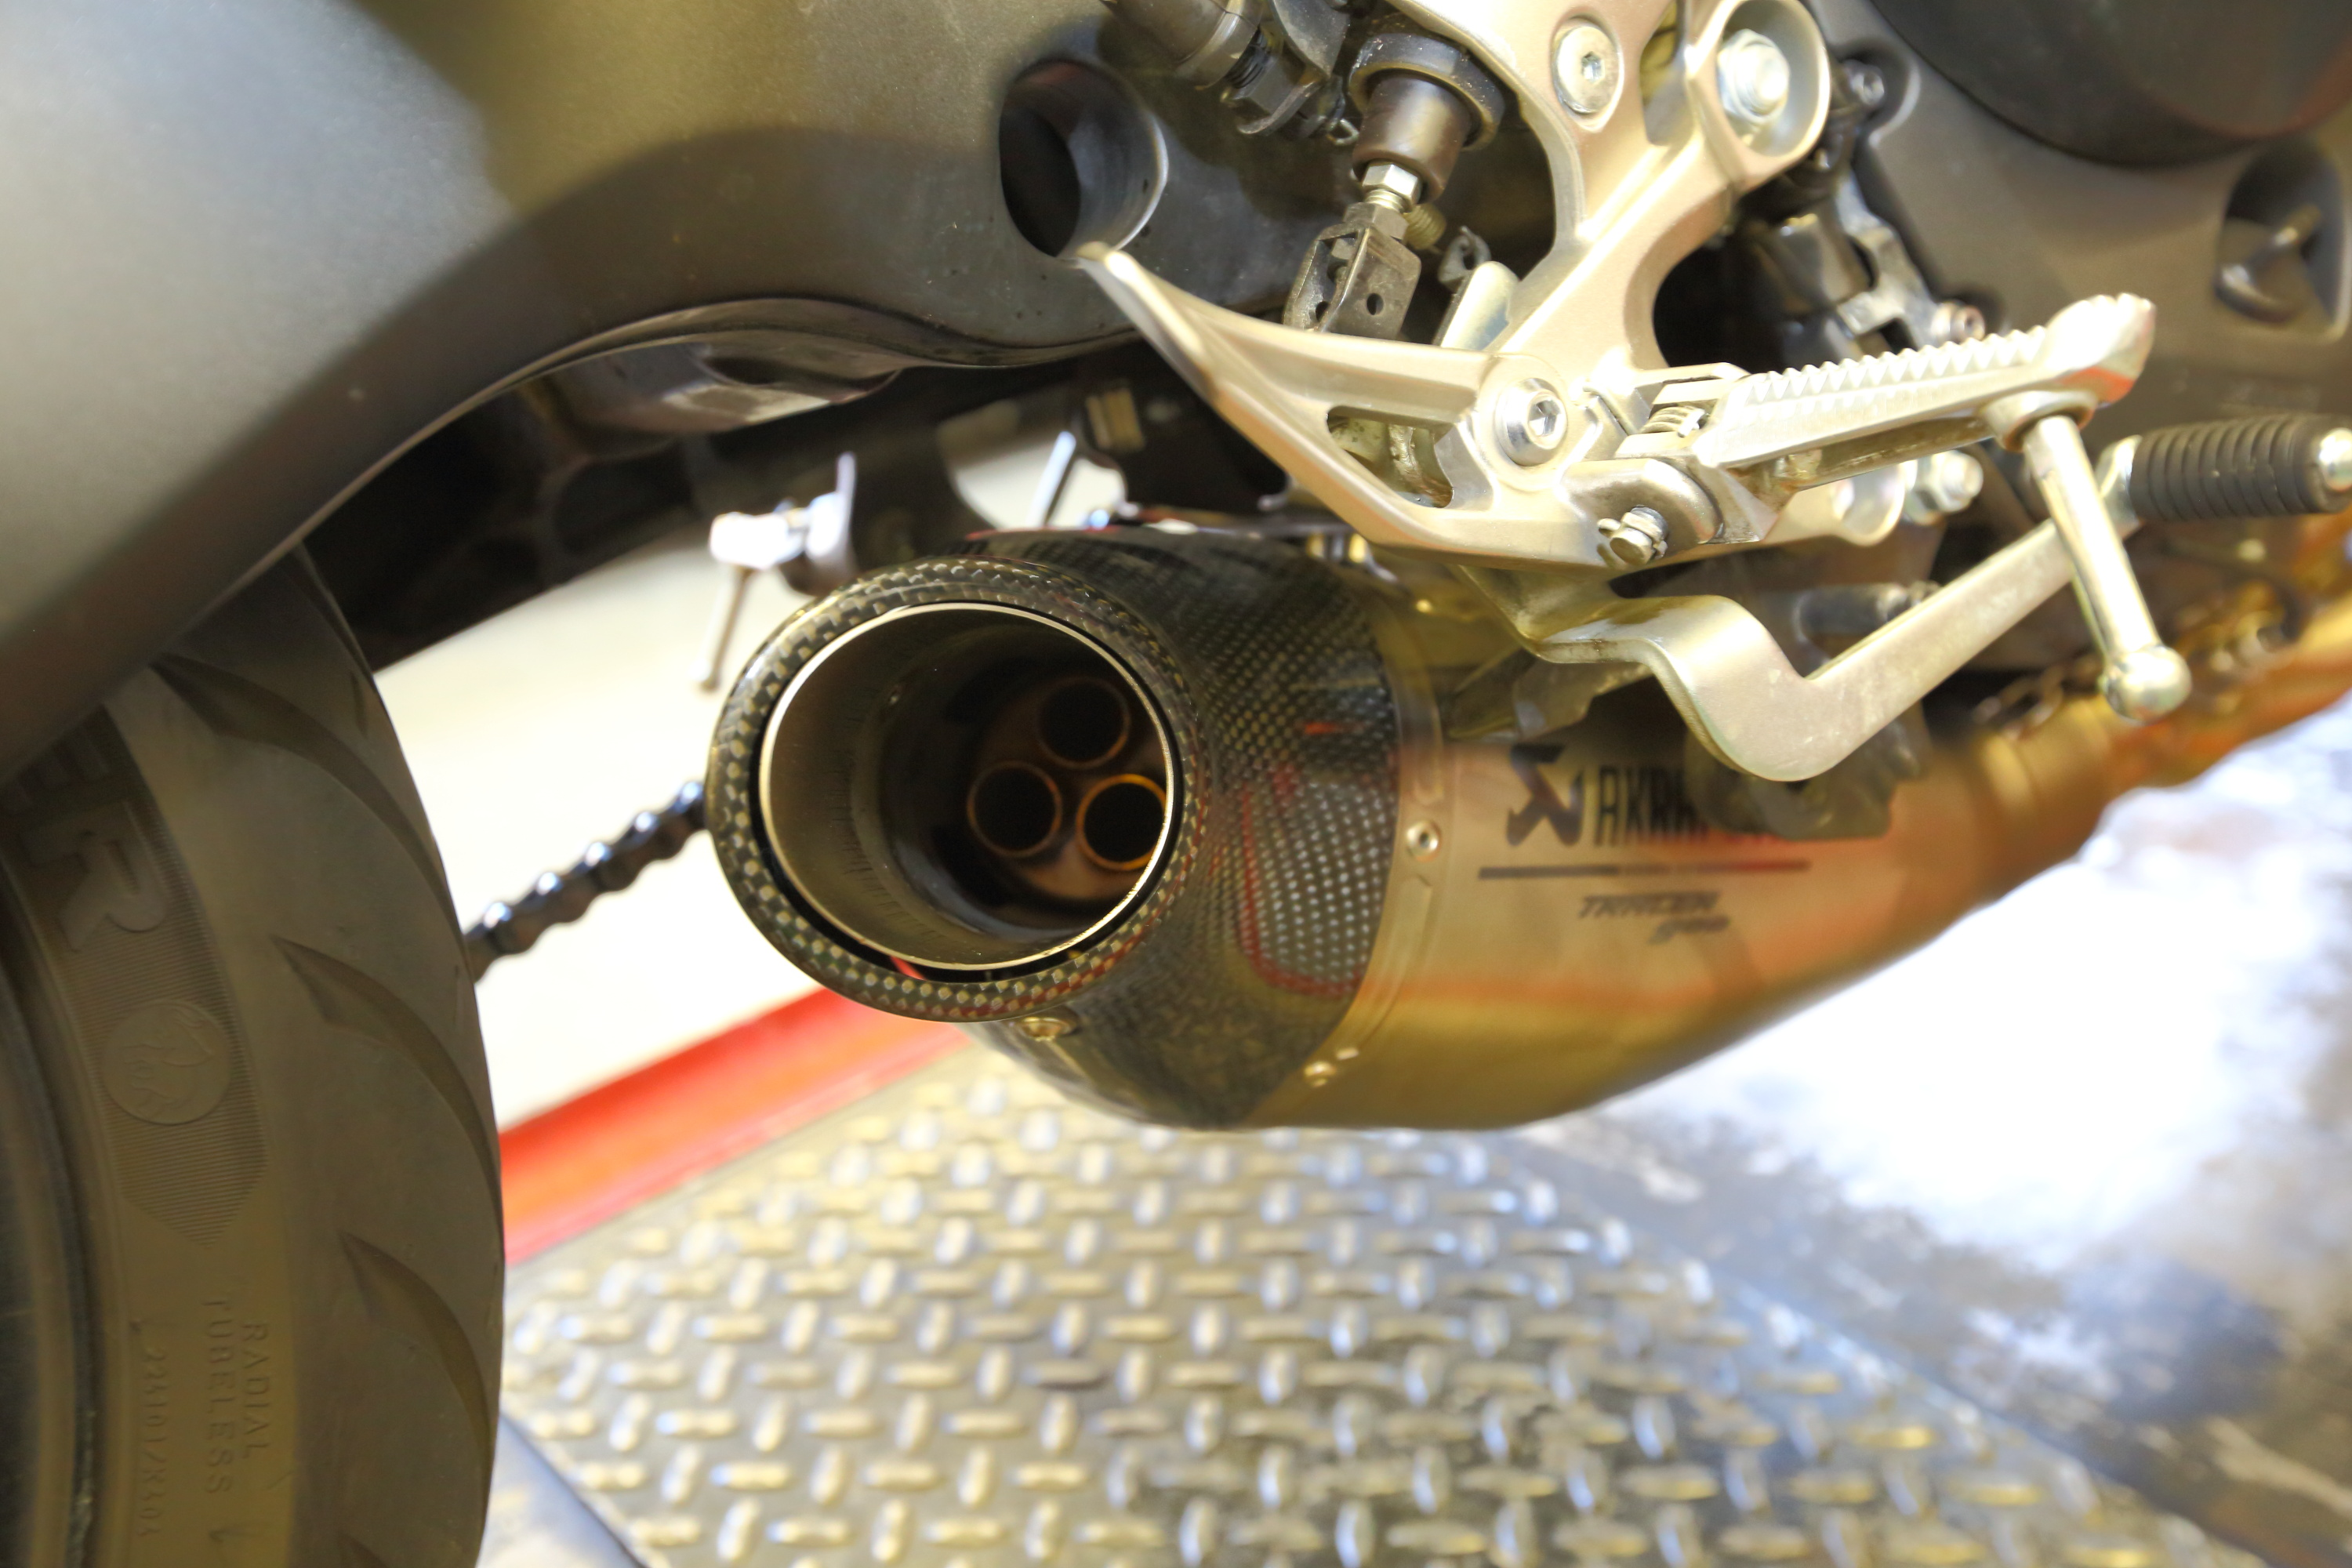 Tracer 900 Akrapovic exhaust fit